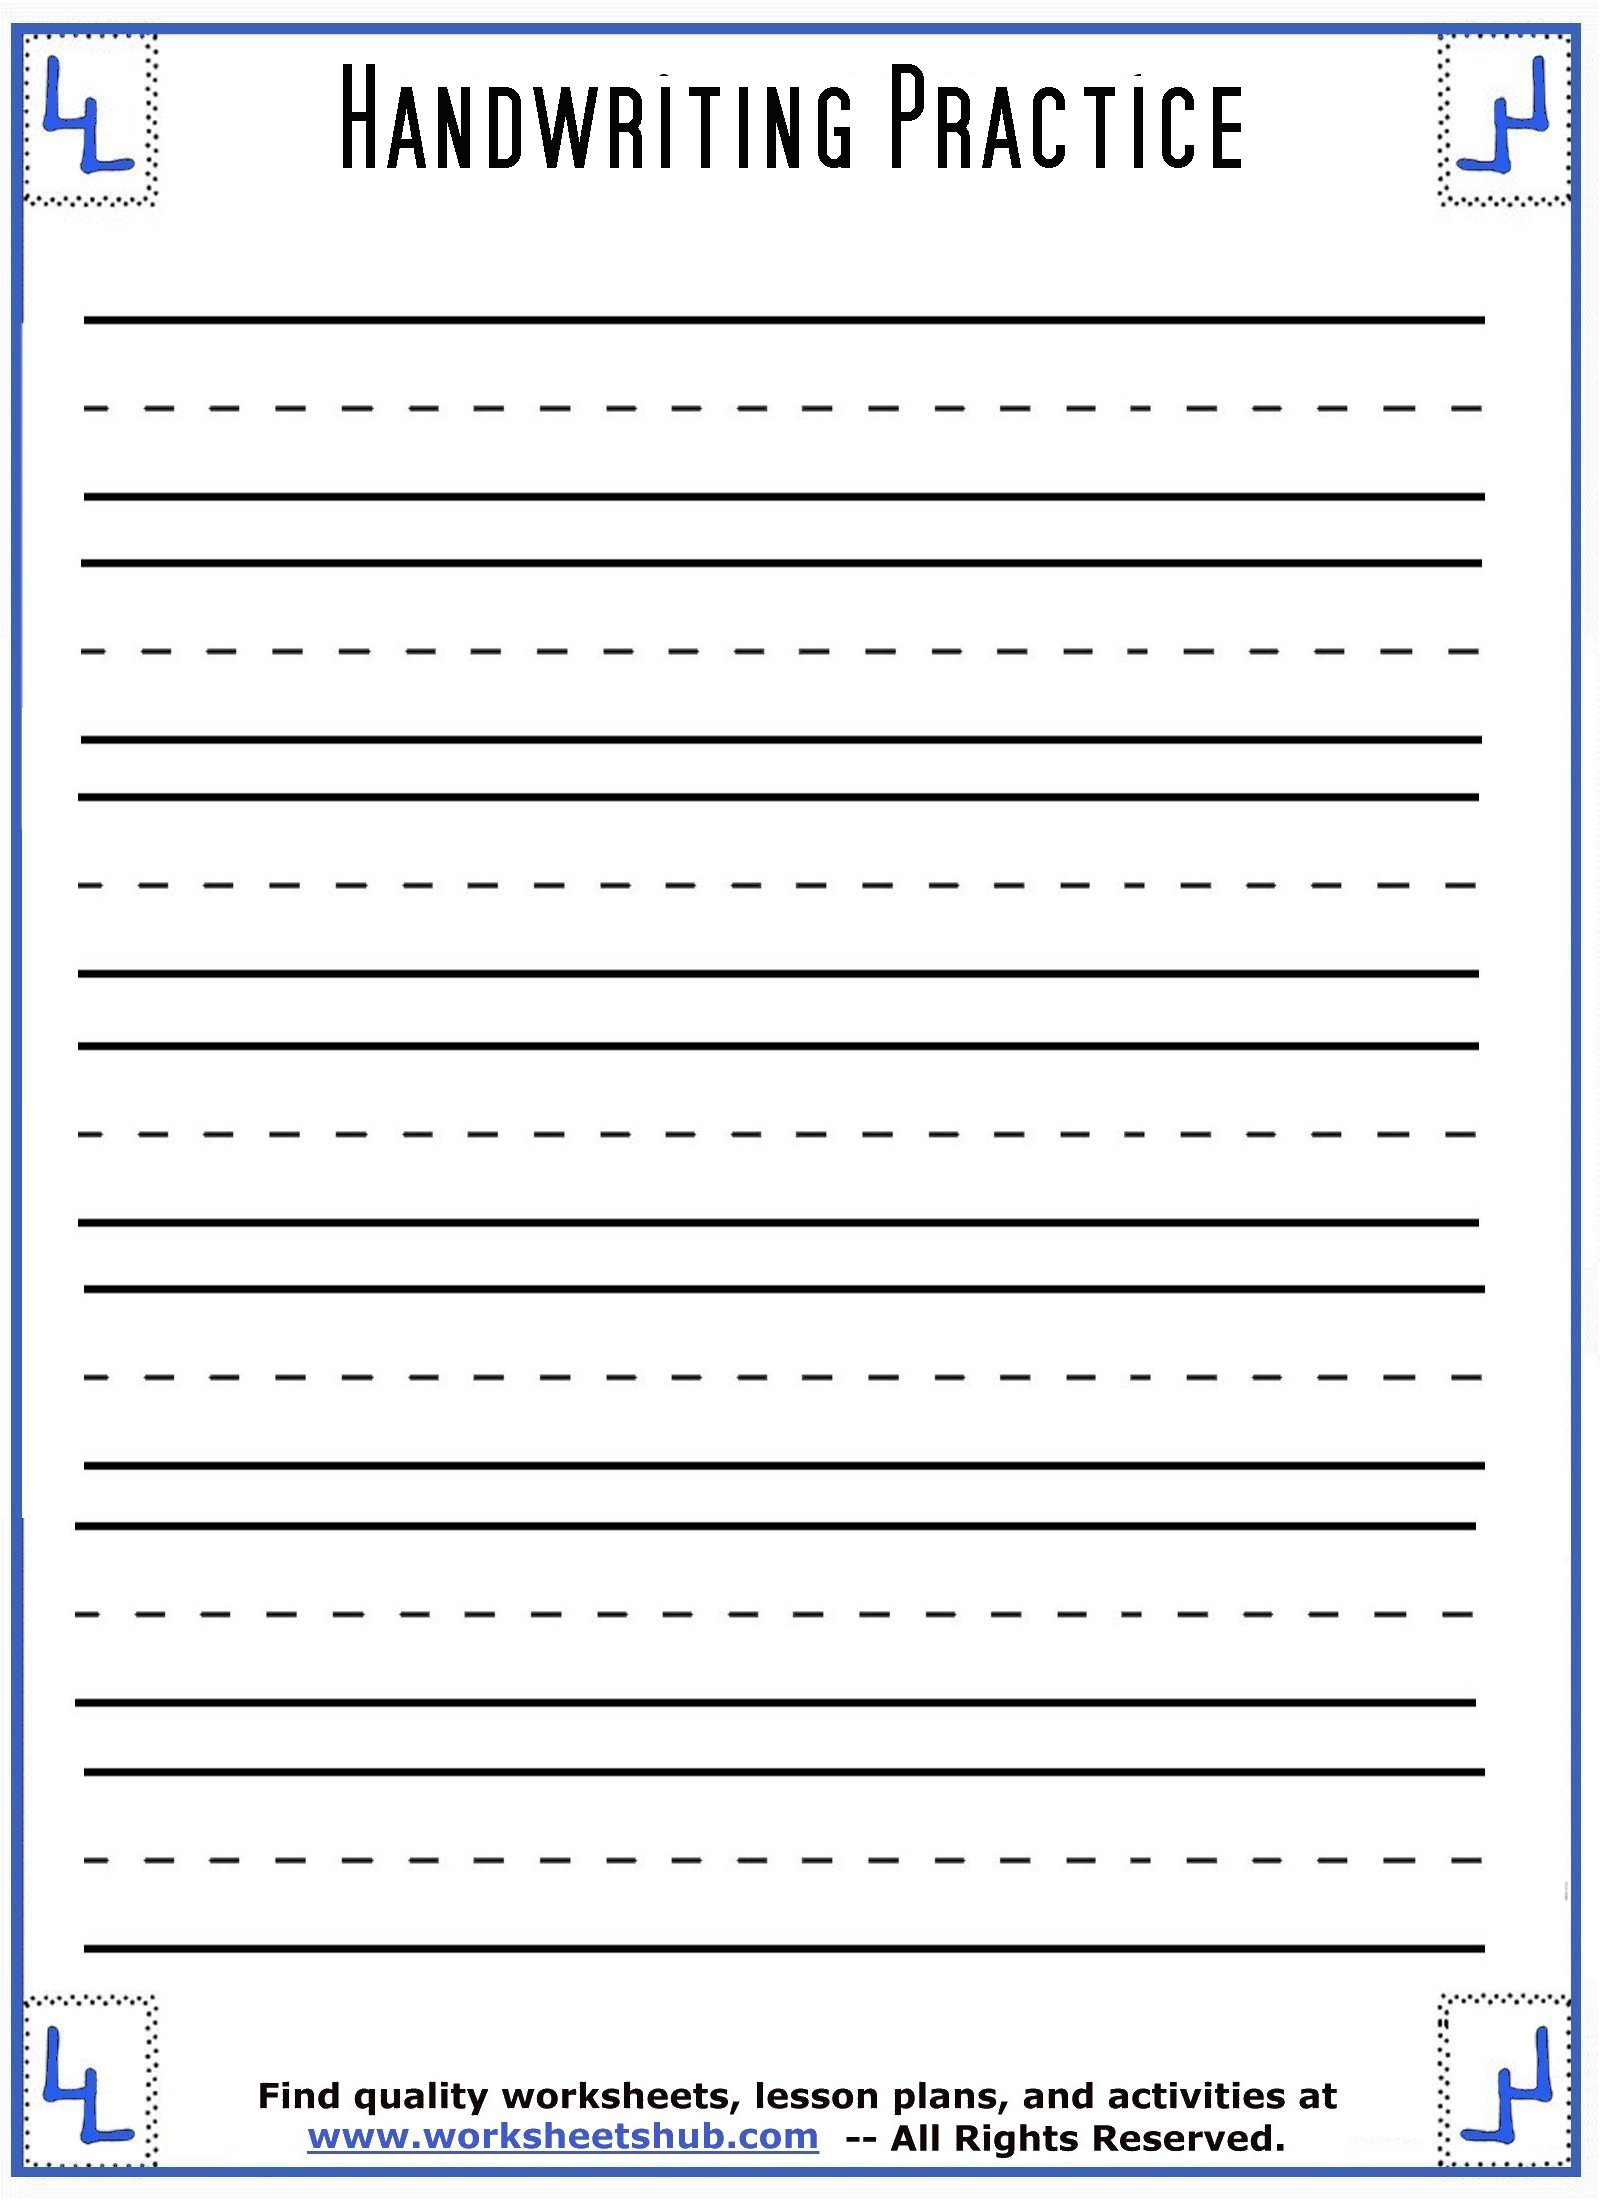 Handwriting Sheets:printable 3-Lined Paper regarding Name Tracing Practice With Red And Blue Lines